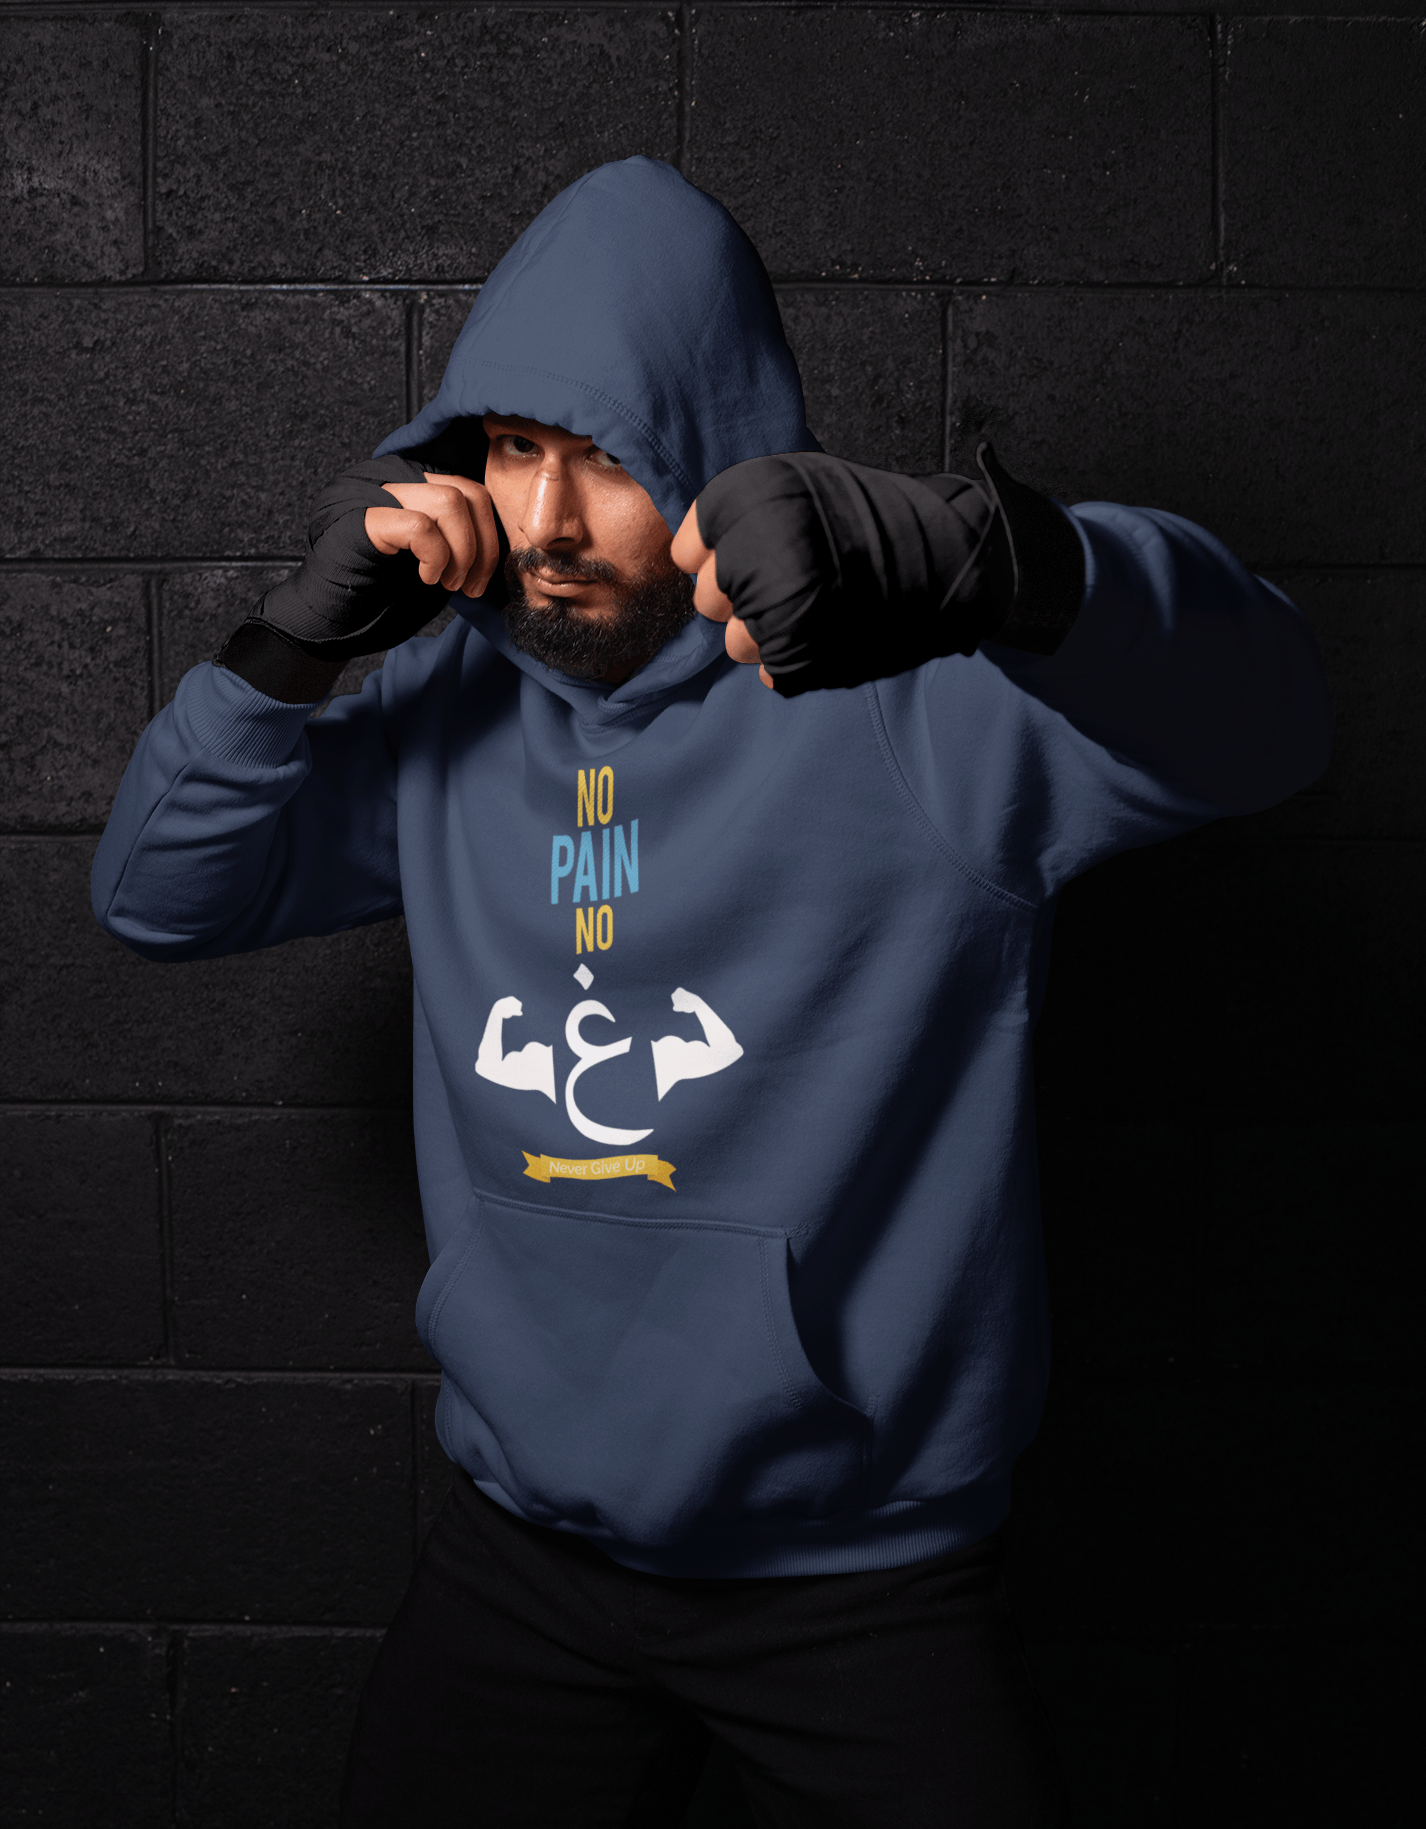 hoodie-mockup-of-a-man-shadowboxing-26249 (3)